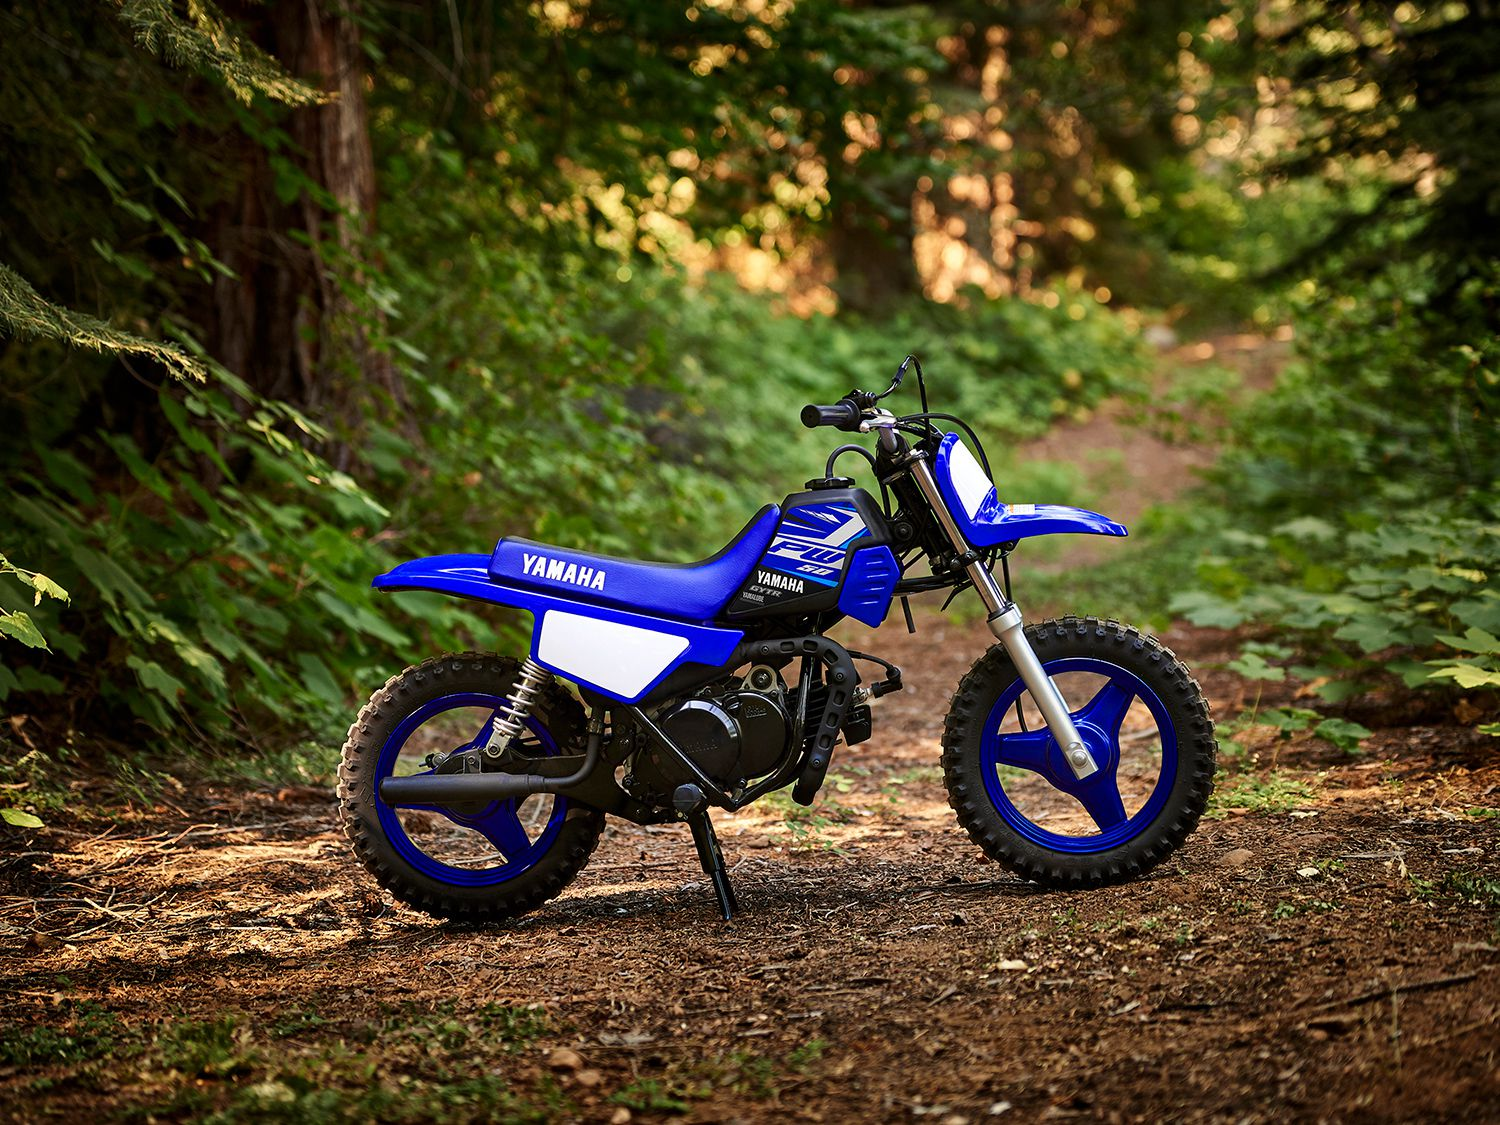 2020 Dirt Bikes, Dual Sports, And Trailbikes Under $5,000